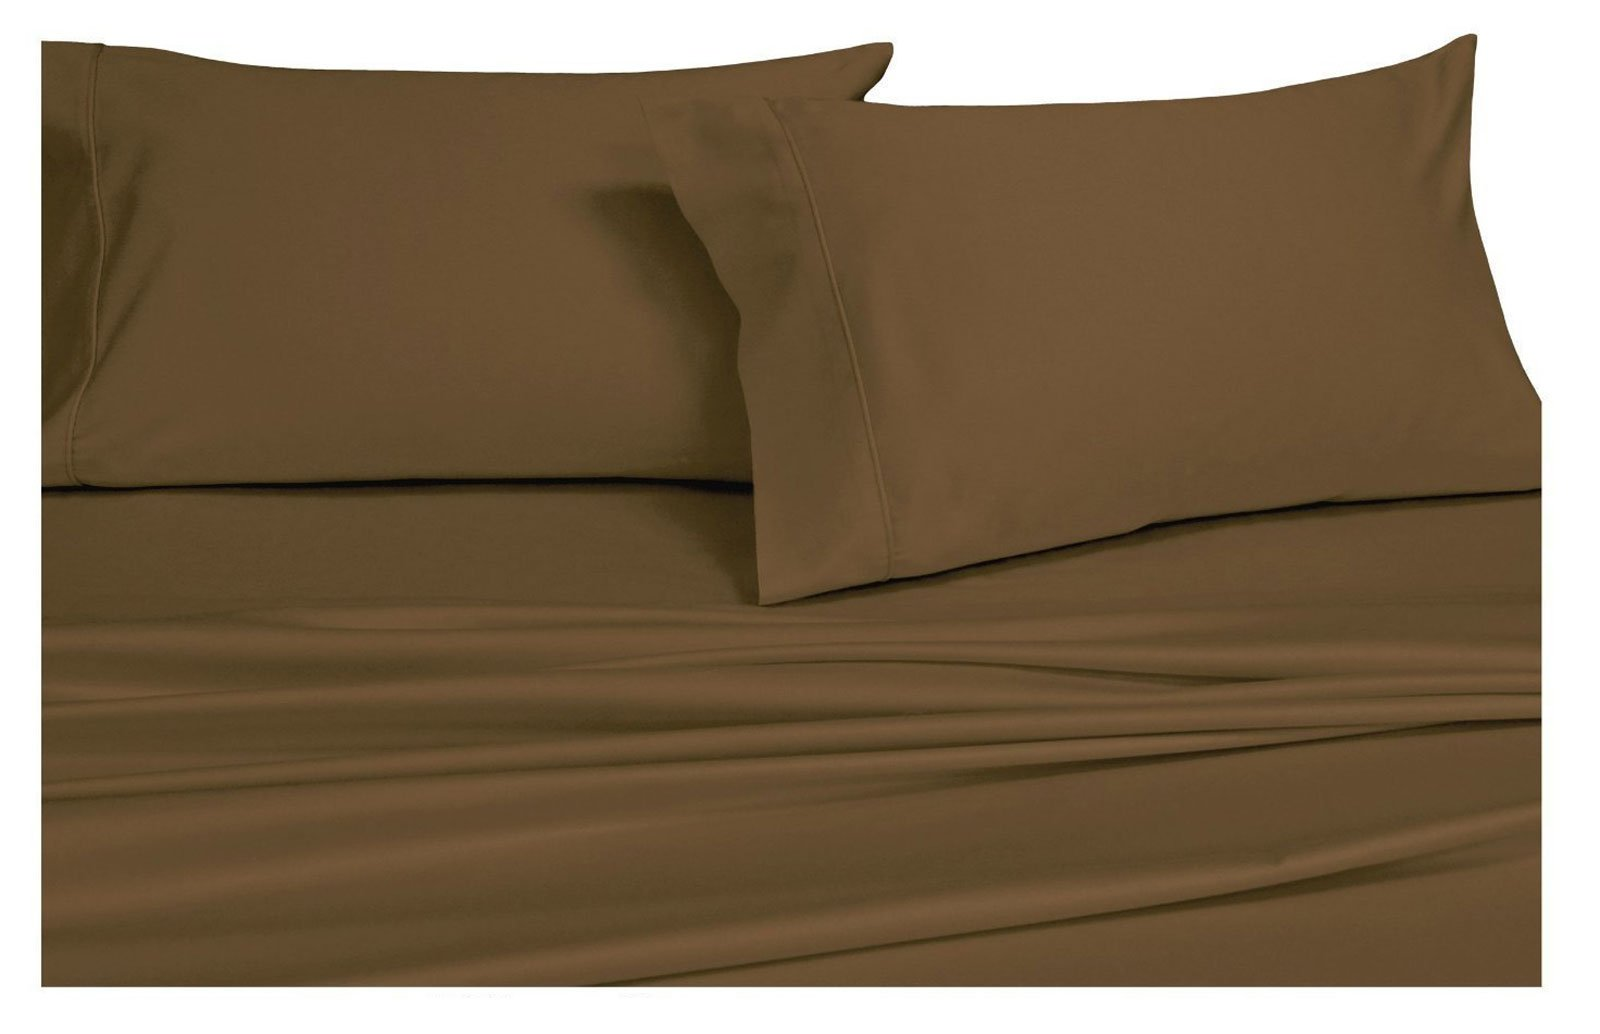 Twin Extra Long Solid Taupe Wrinkle-Free Brushed Microfiber Sheet Set, deep pocket, 95gsm, 100% Luxury sheets.